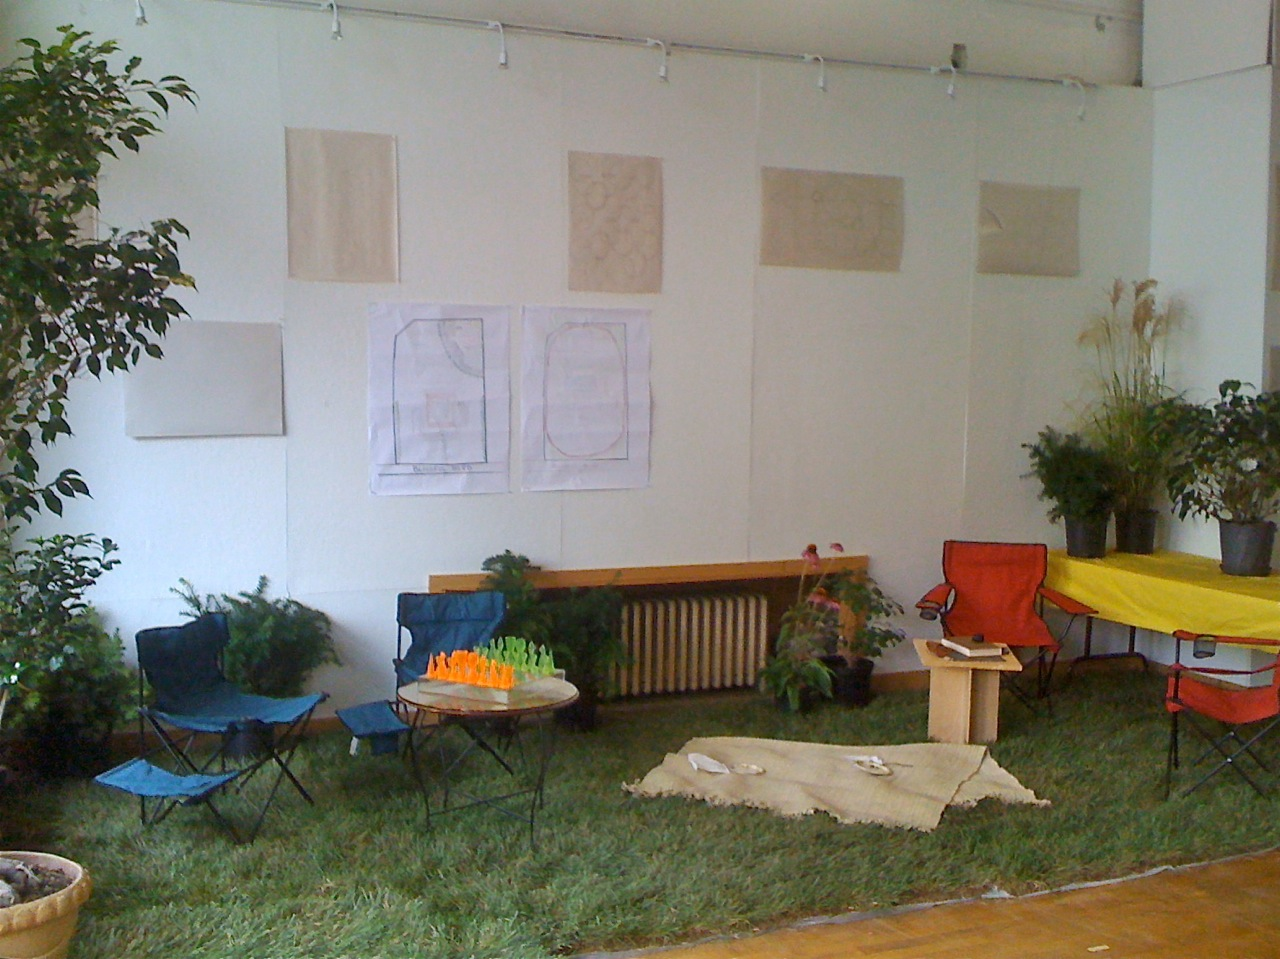 Park(ing) Day continues inside the Urban Design Studio